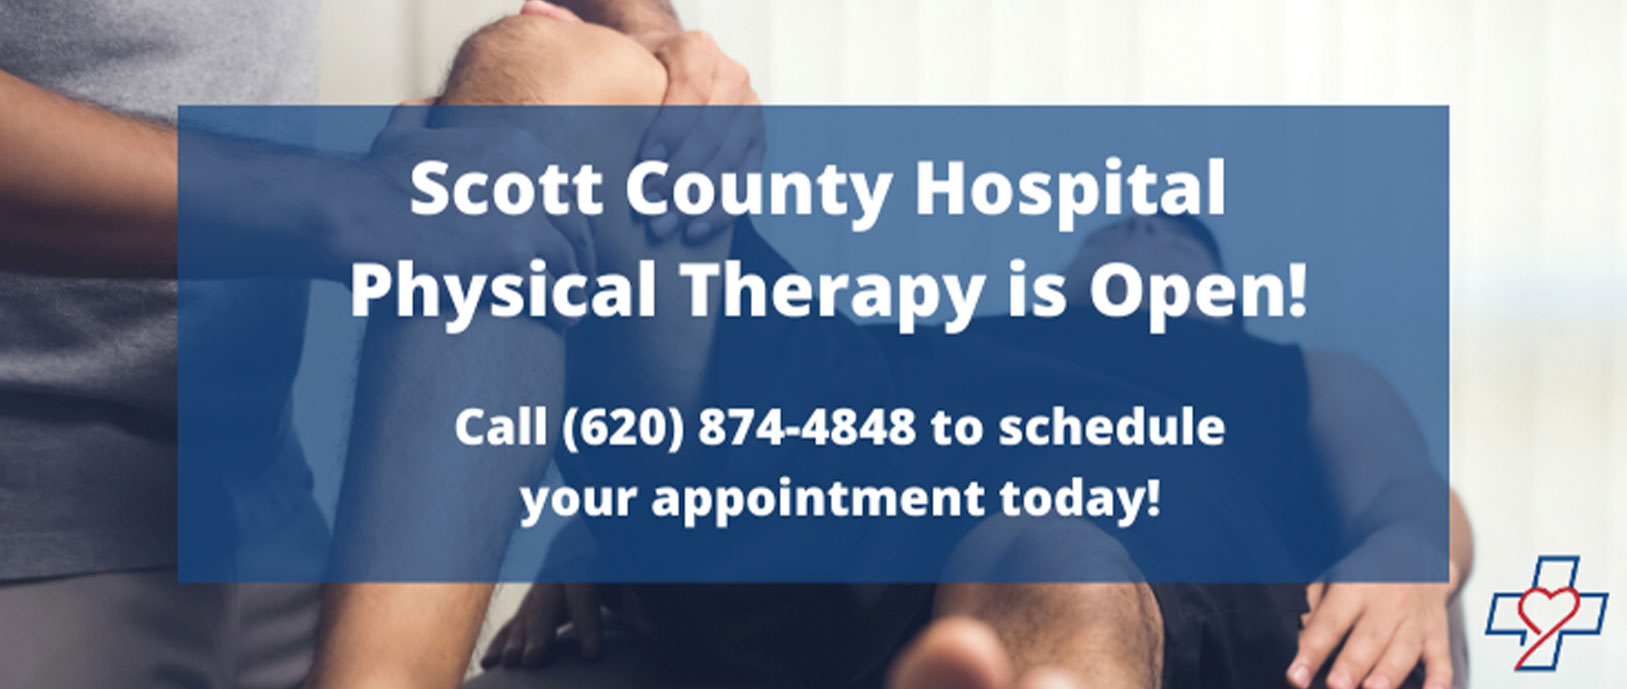 Scott County Hospital Physical Therapy is open! Call 620-874-4848 to schedule your appointment today!